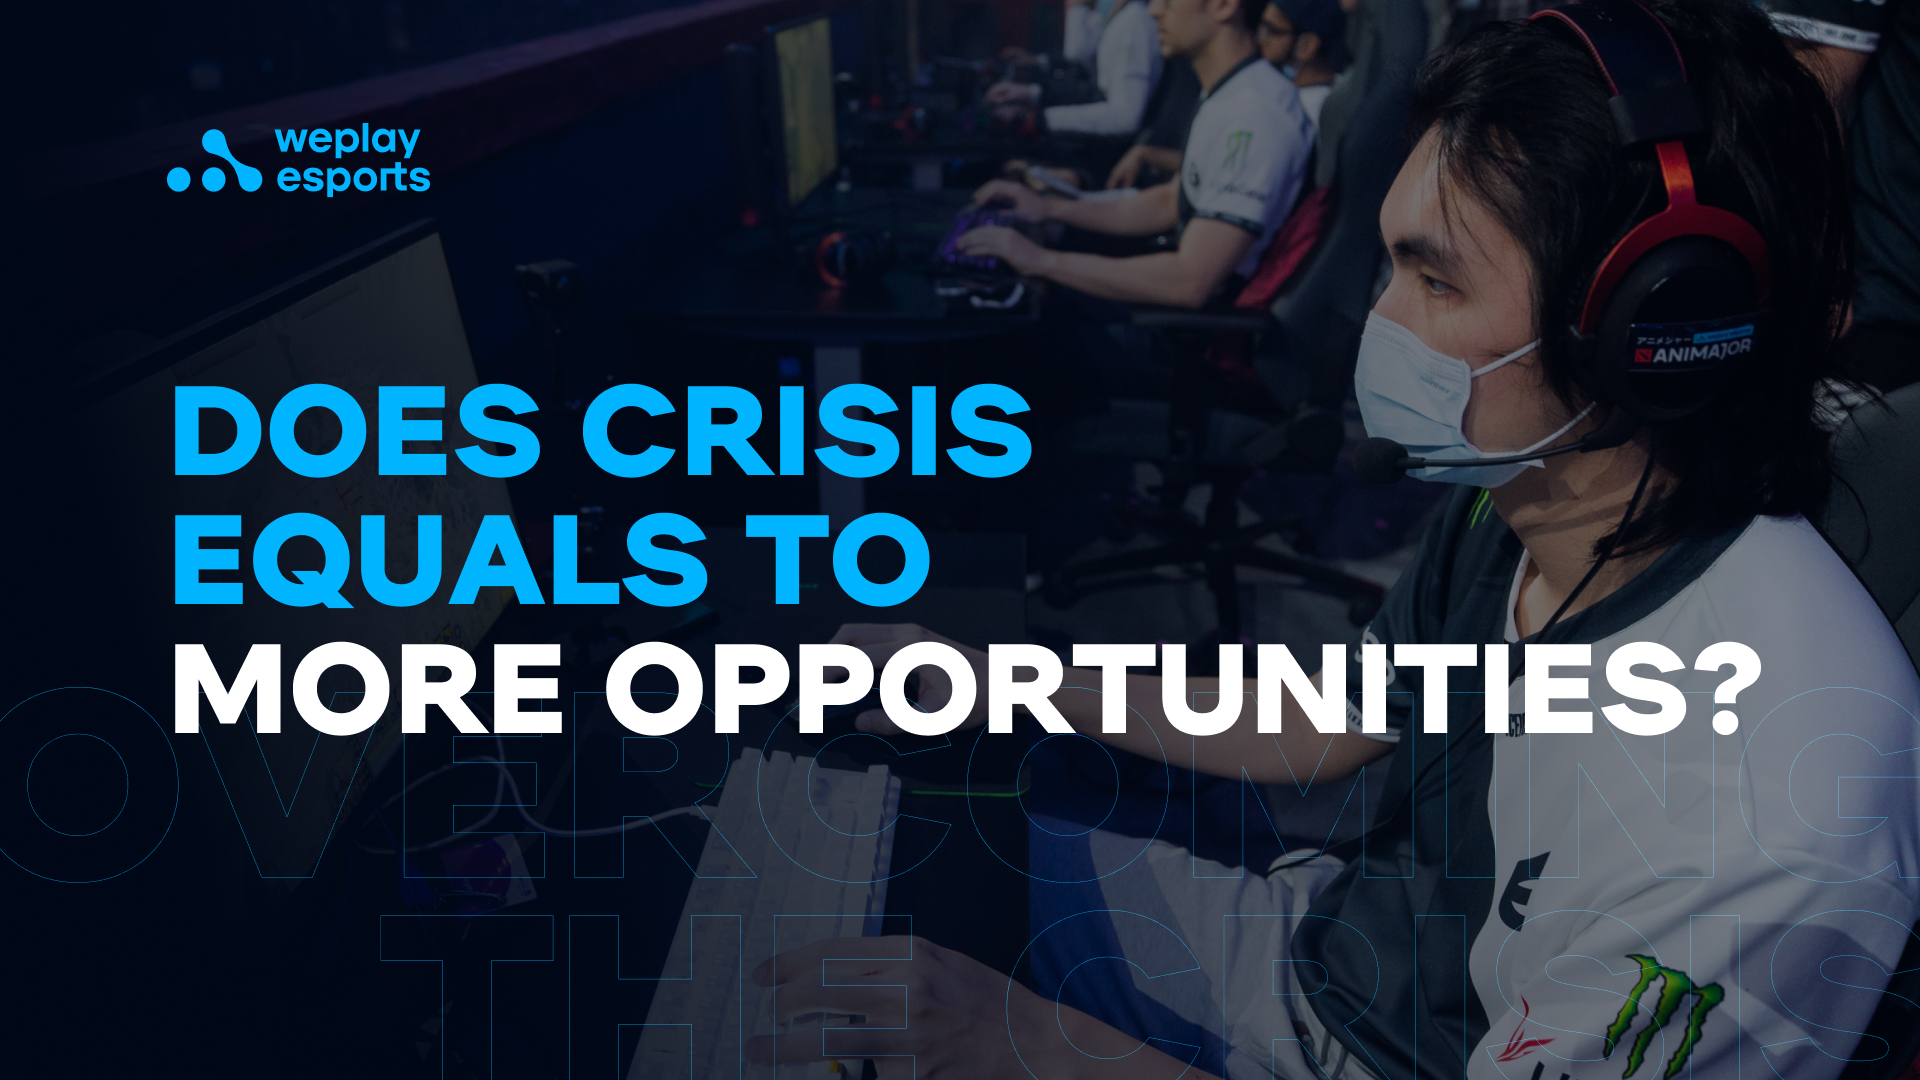 Does crisis equals to more opportunities?